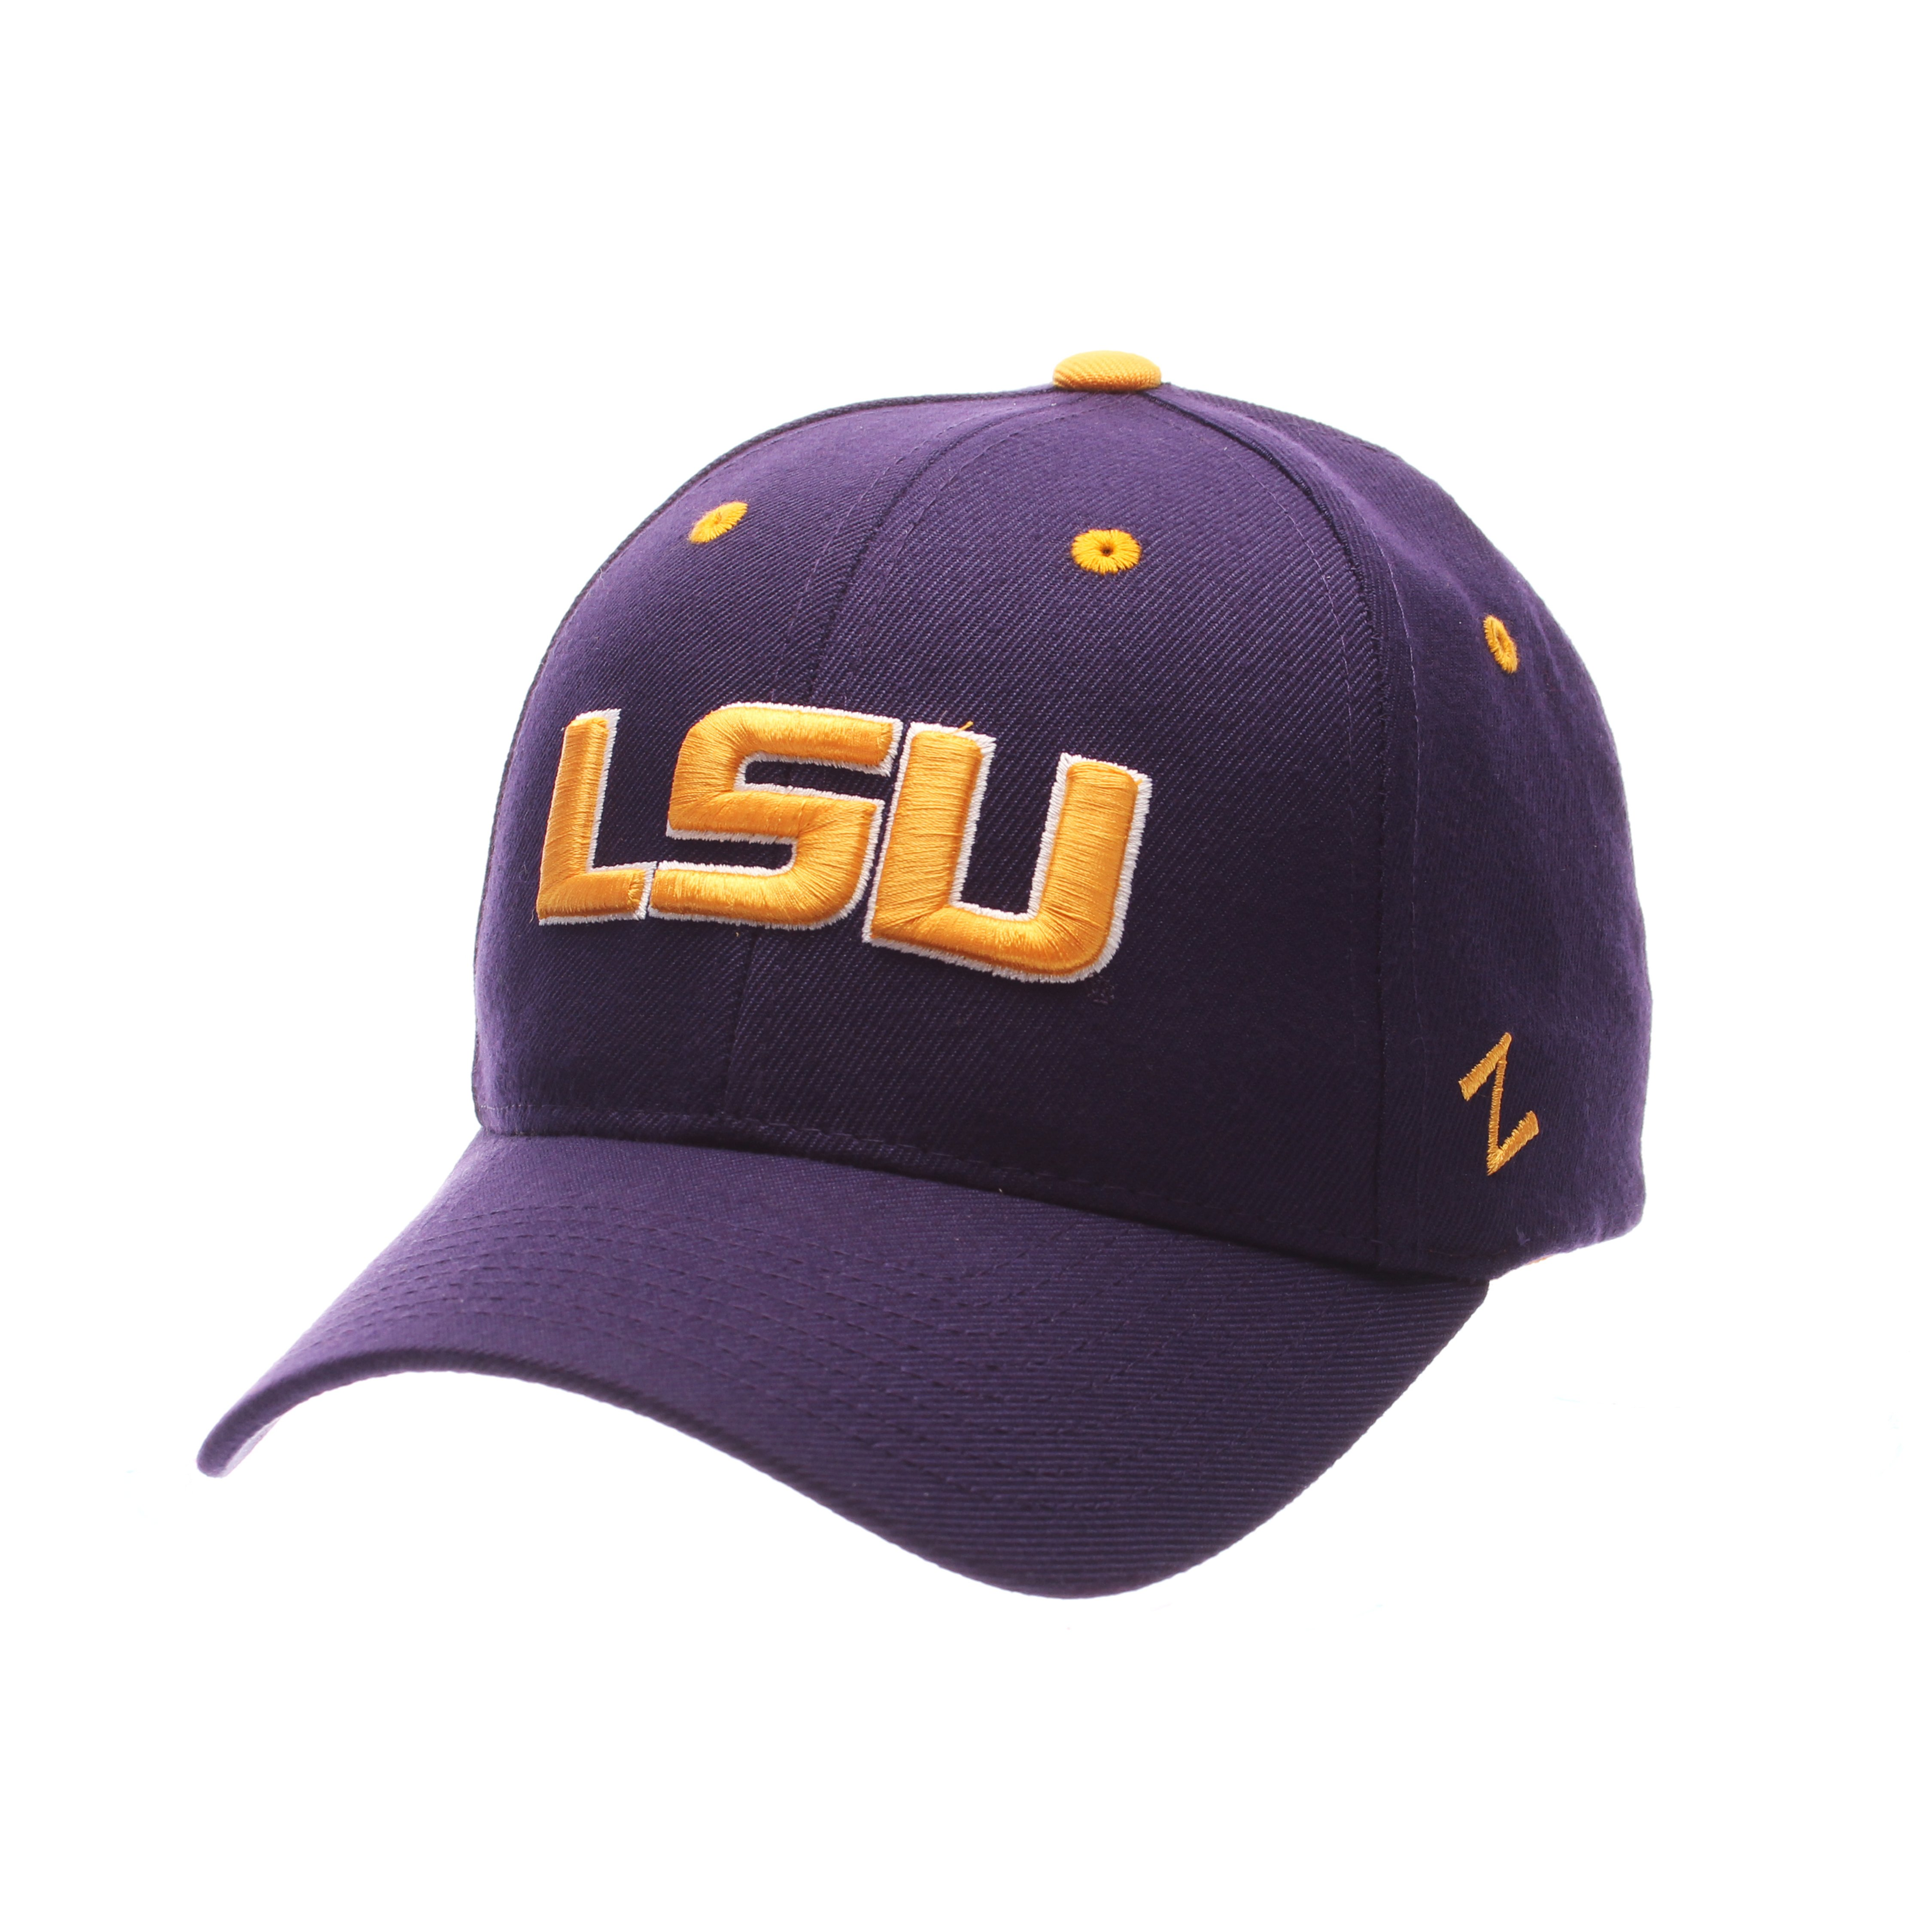 low priced 37718 20a0d aliexpress lsu tigers official ncaa competitor adjustable hat cap by zephyr  968819 77ad1 225a8